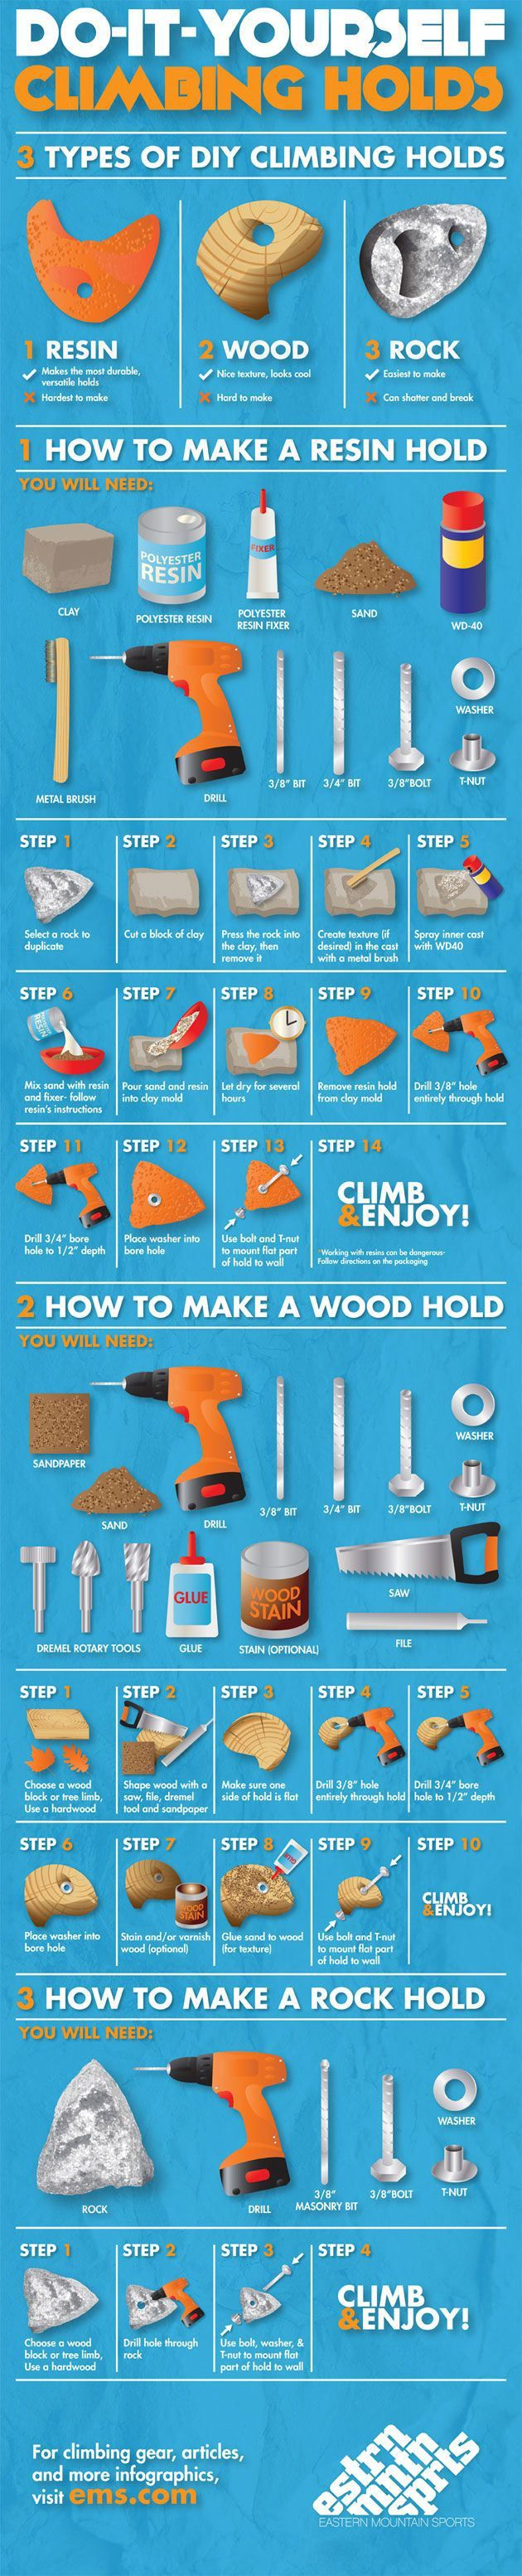 DIY Climbing Holds  [by Eastern Mountain Sports -- via #tipsographic]. More at tipsographic.com